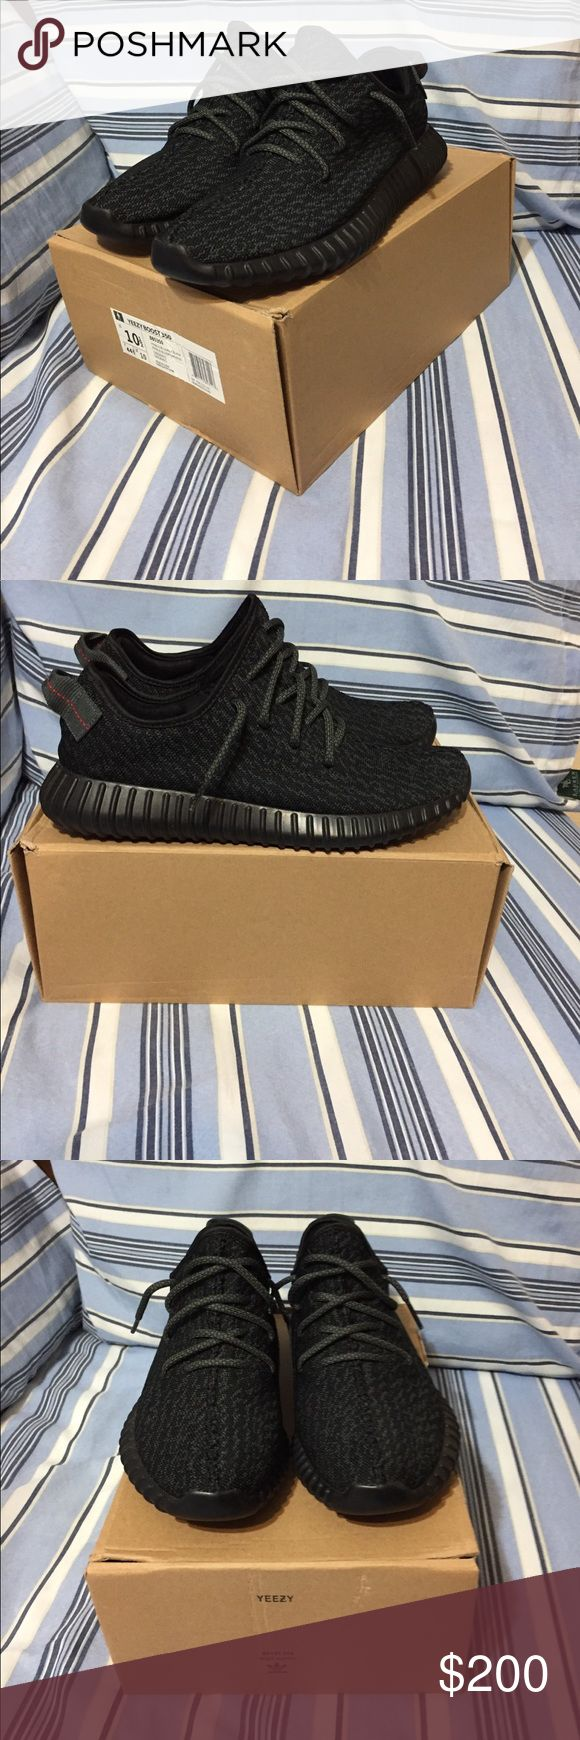 Adidas Yeezy 350 Boost pirate black size 10.5 UA OFFERS ARE WELCOME Yeezy Shoes Sneakers